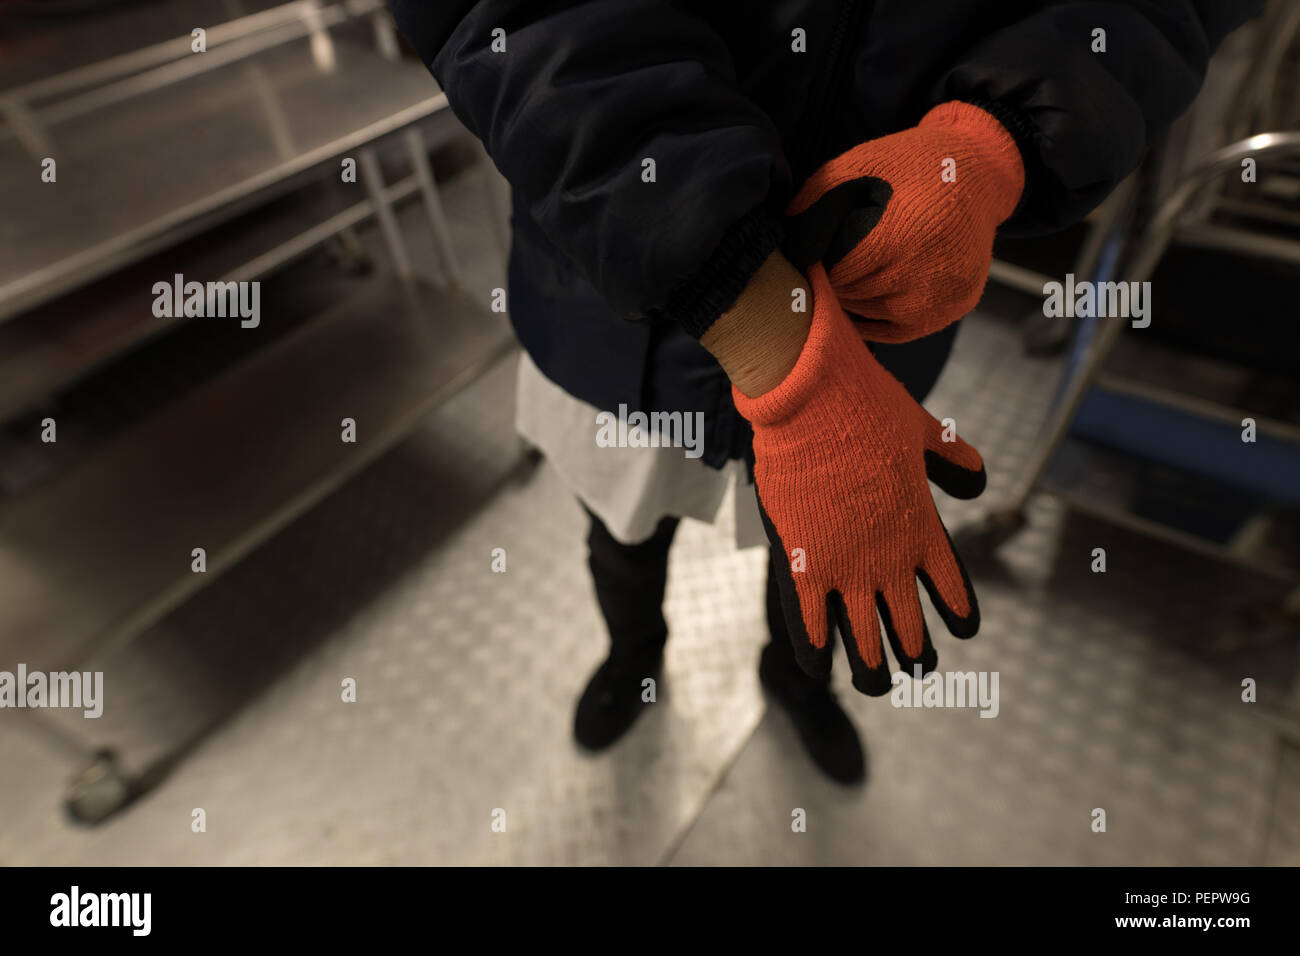 Laboratory technician wearing gloves in blood bank - Stock Image